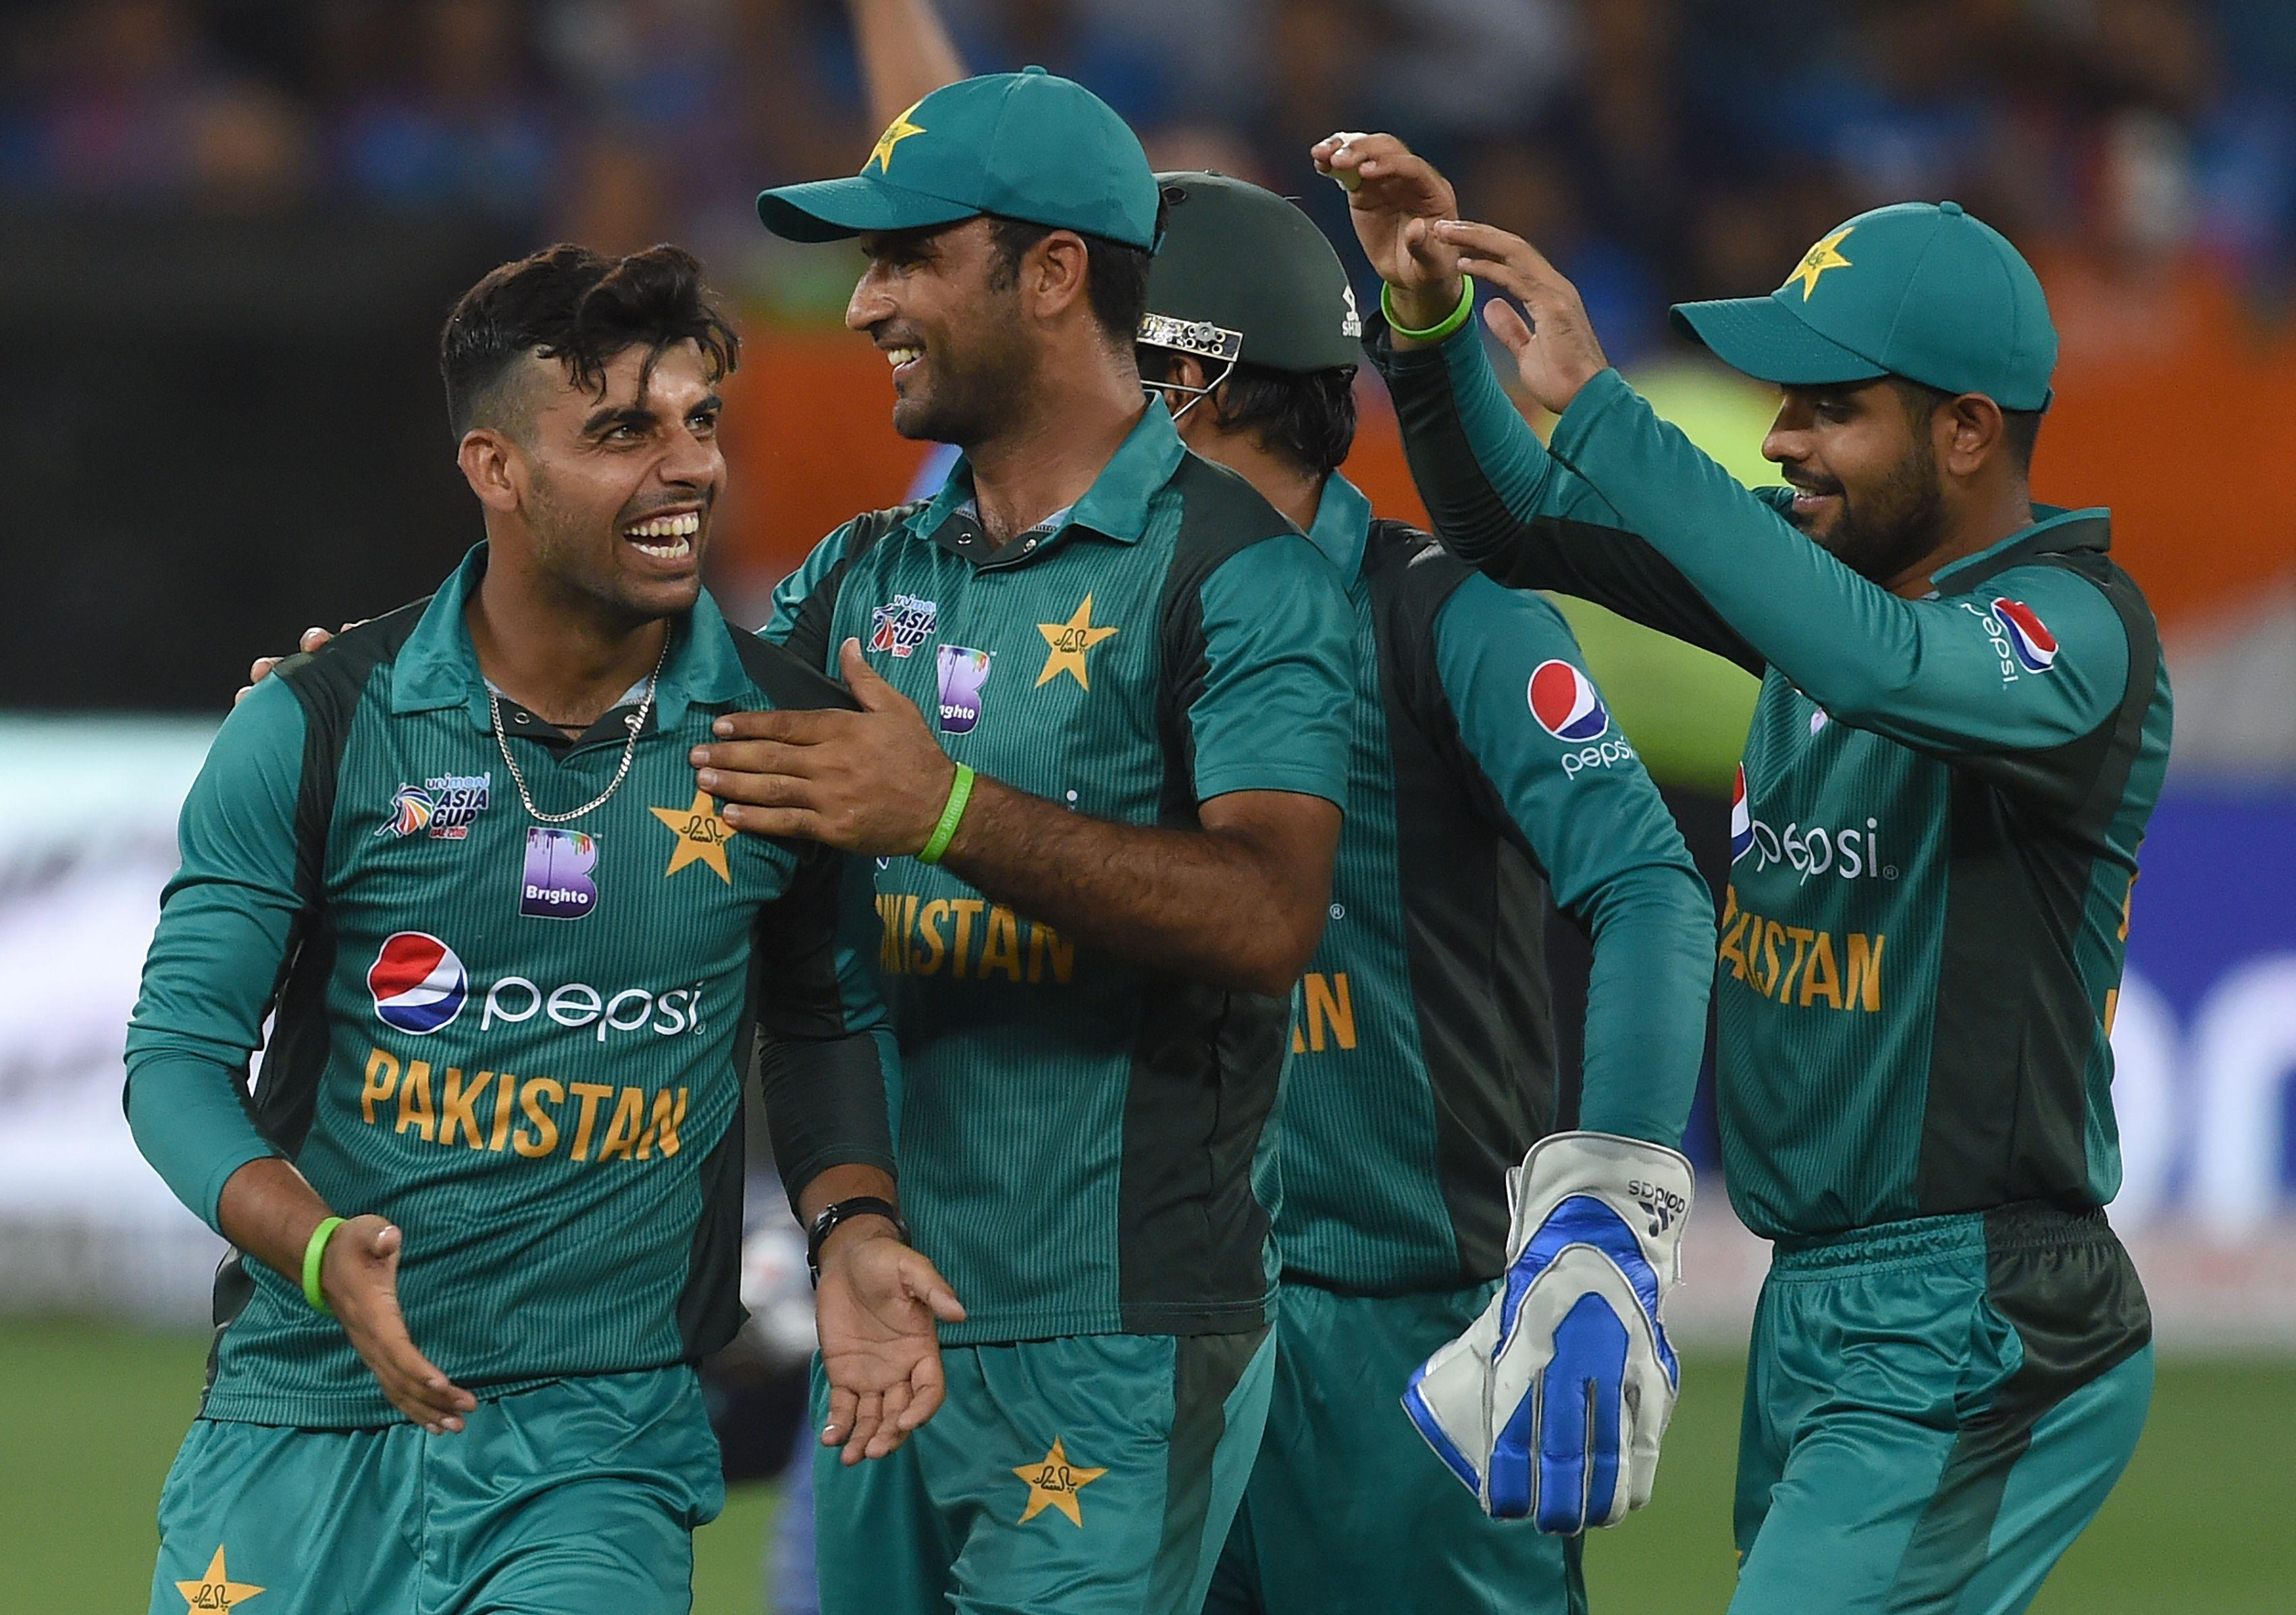 Pakistan are looking to follow up a good Test series win over Australia with victory in the T20 internationals